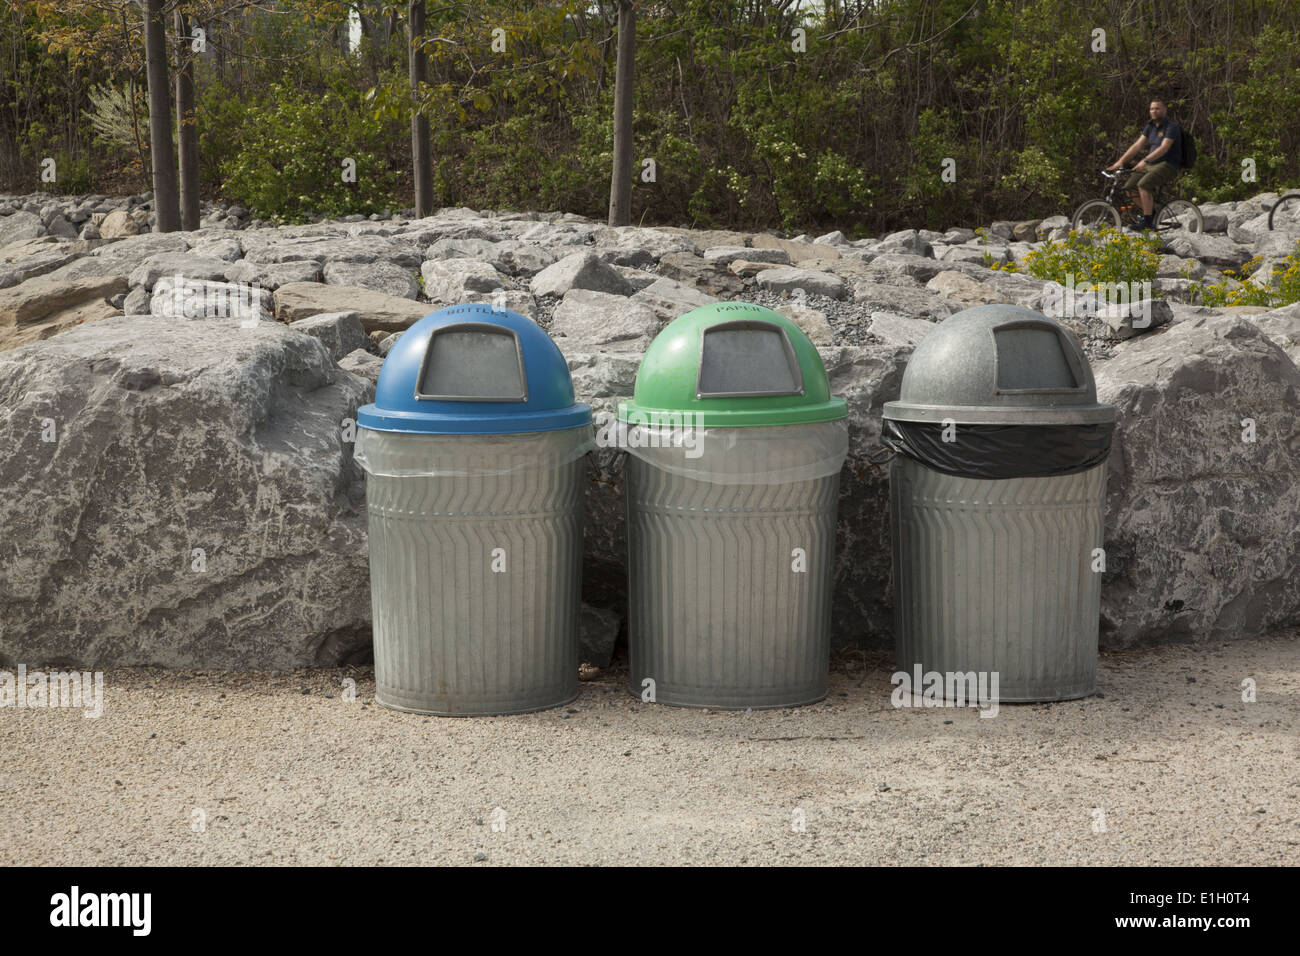 Trash and recycling receptacles in Brooklyn Bridge Park, Brooklyn, NY. - Stock Image